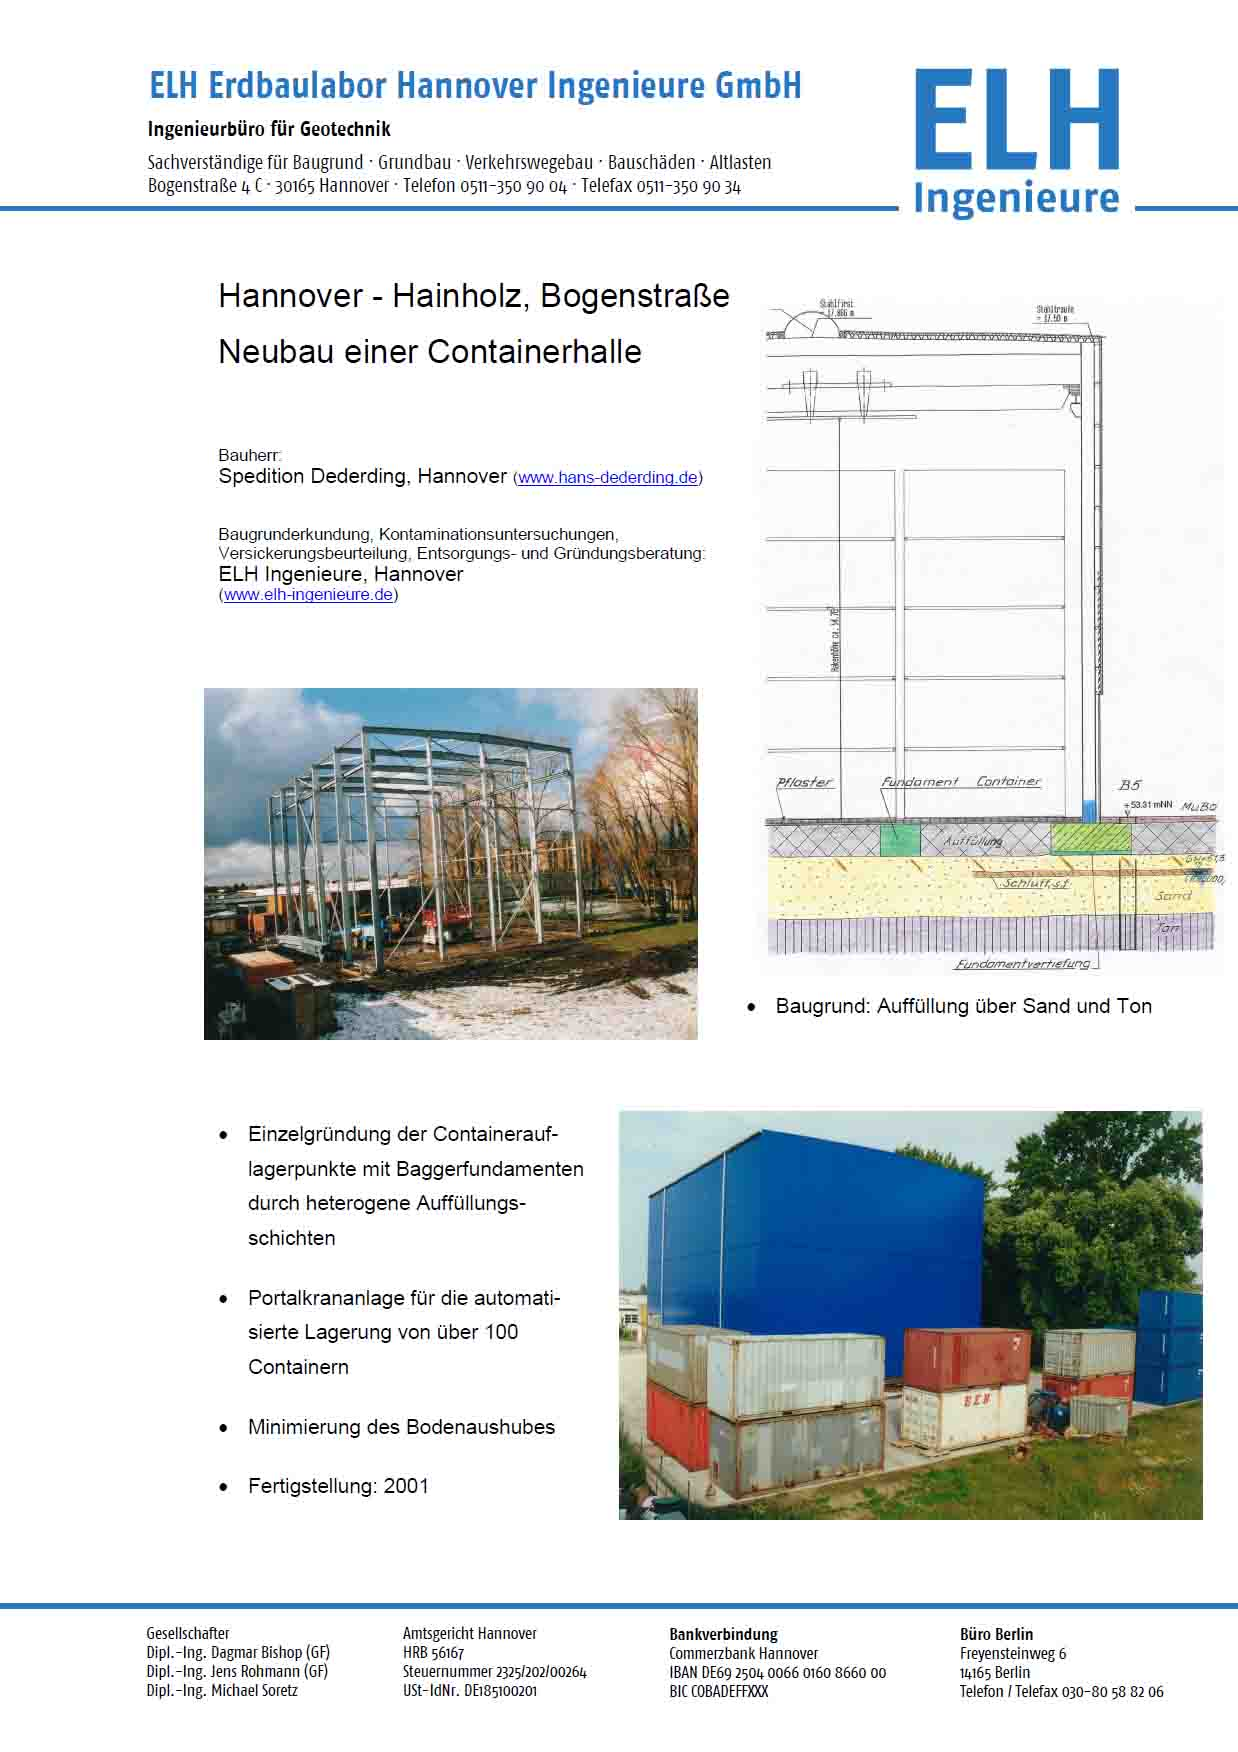 19 PB H Hainholz Container